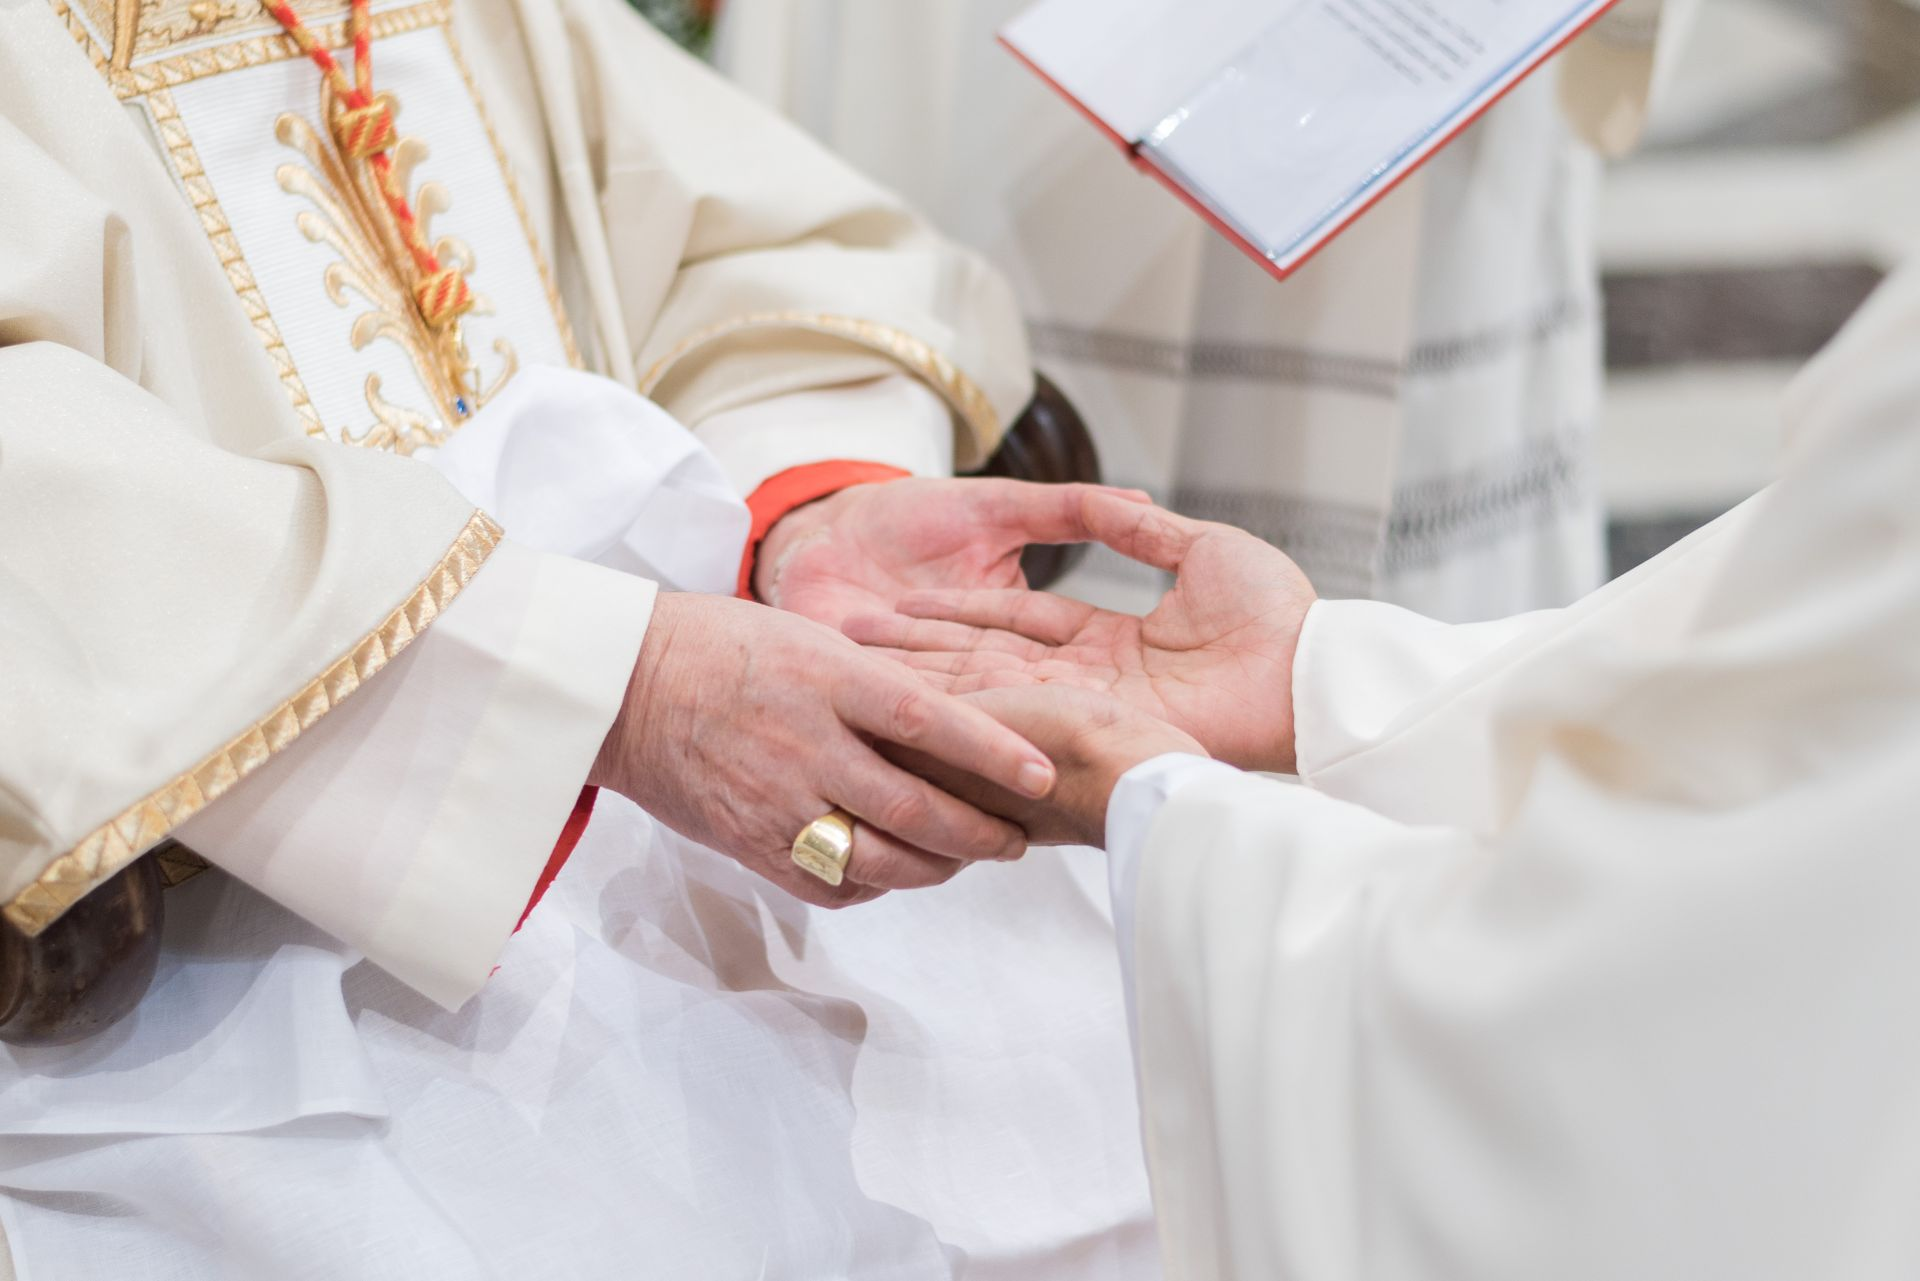 hands, father, priest, care, sacramento, ring, vocation, bishop, priesthood, religious life, fe, consecrated life, ordering, religious, service, liturgy, order, unction, vocation, presbyter